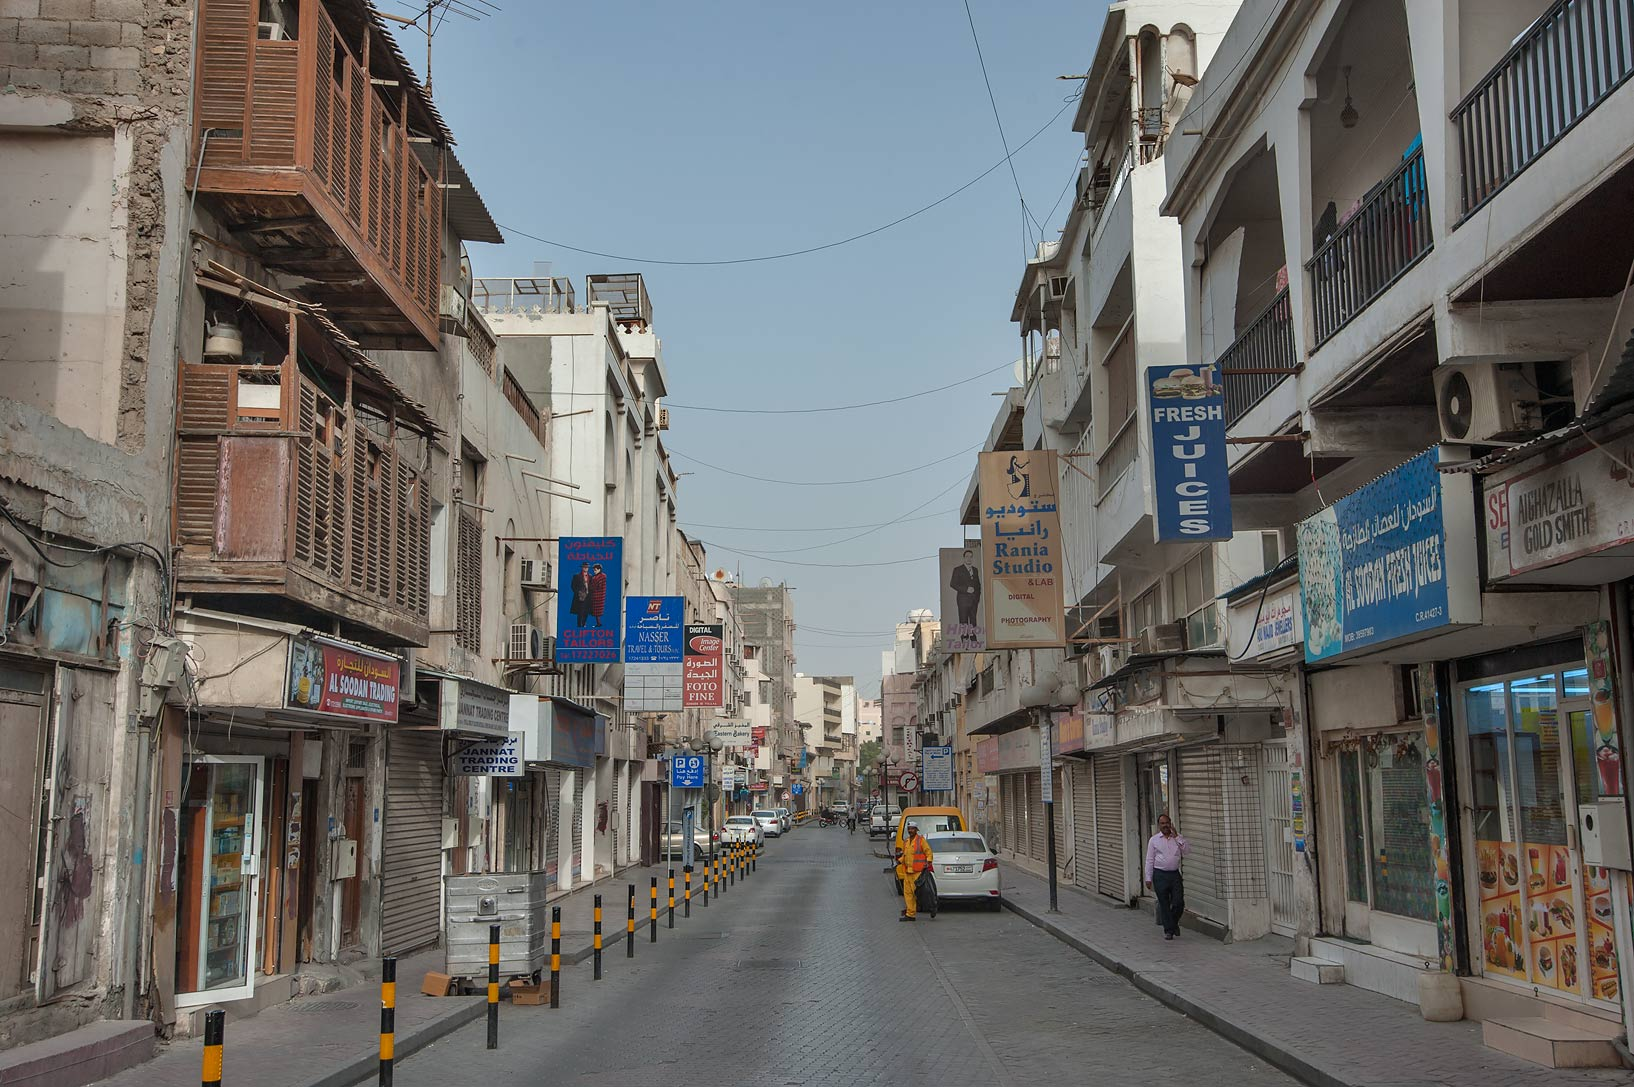 Central Manama, Bahrain  - A street in Central Manama. Bahrain